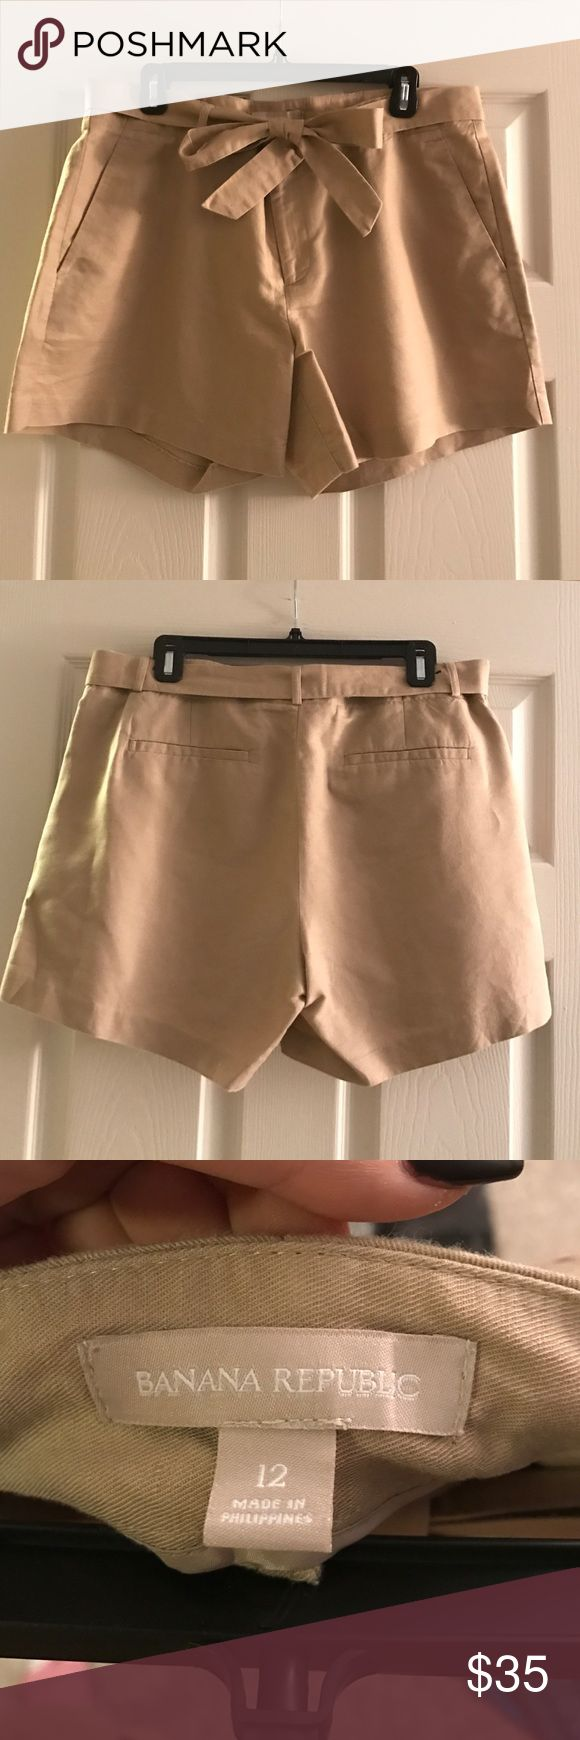 Tan Banana Republic Shorts with Tie Belt Super cute and comfy! Could be dressed up or dressed down. Can tie the belt however you prefer I just thought it was cute with the bow! Only worn a few times! No trades! Banana Republic Shorts